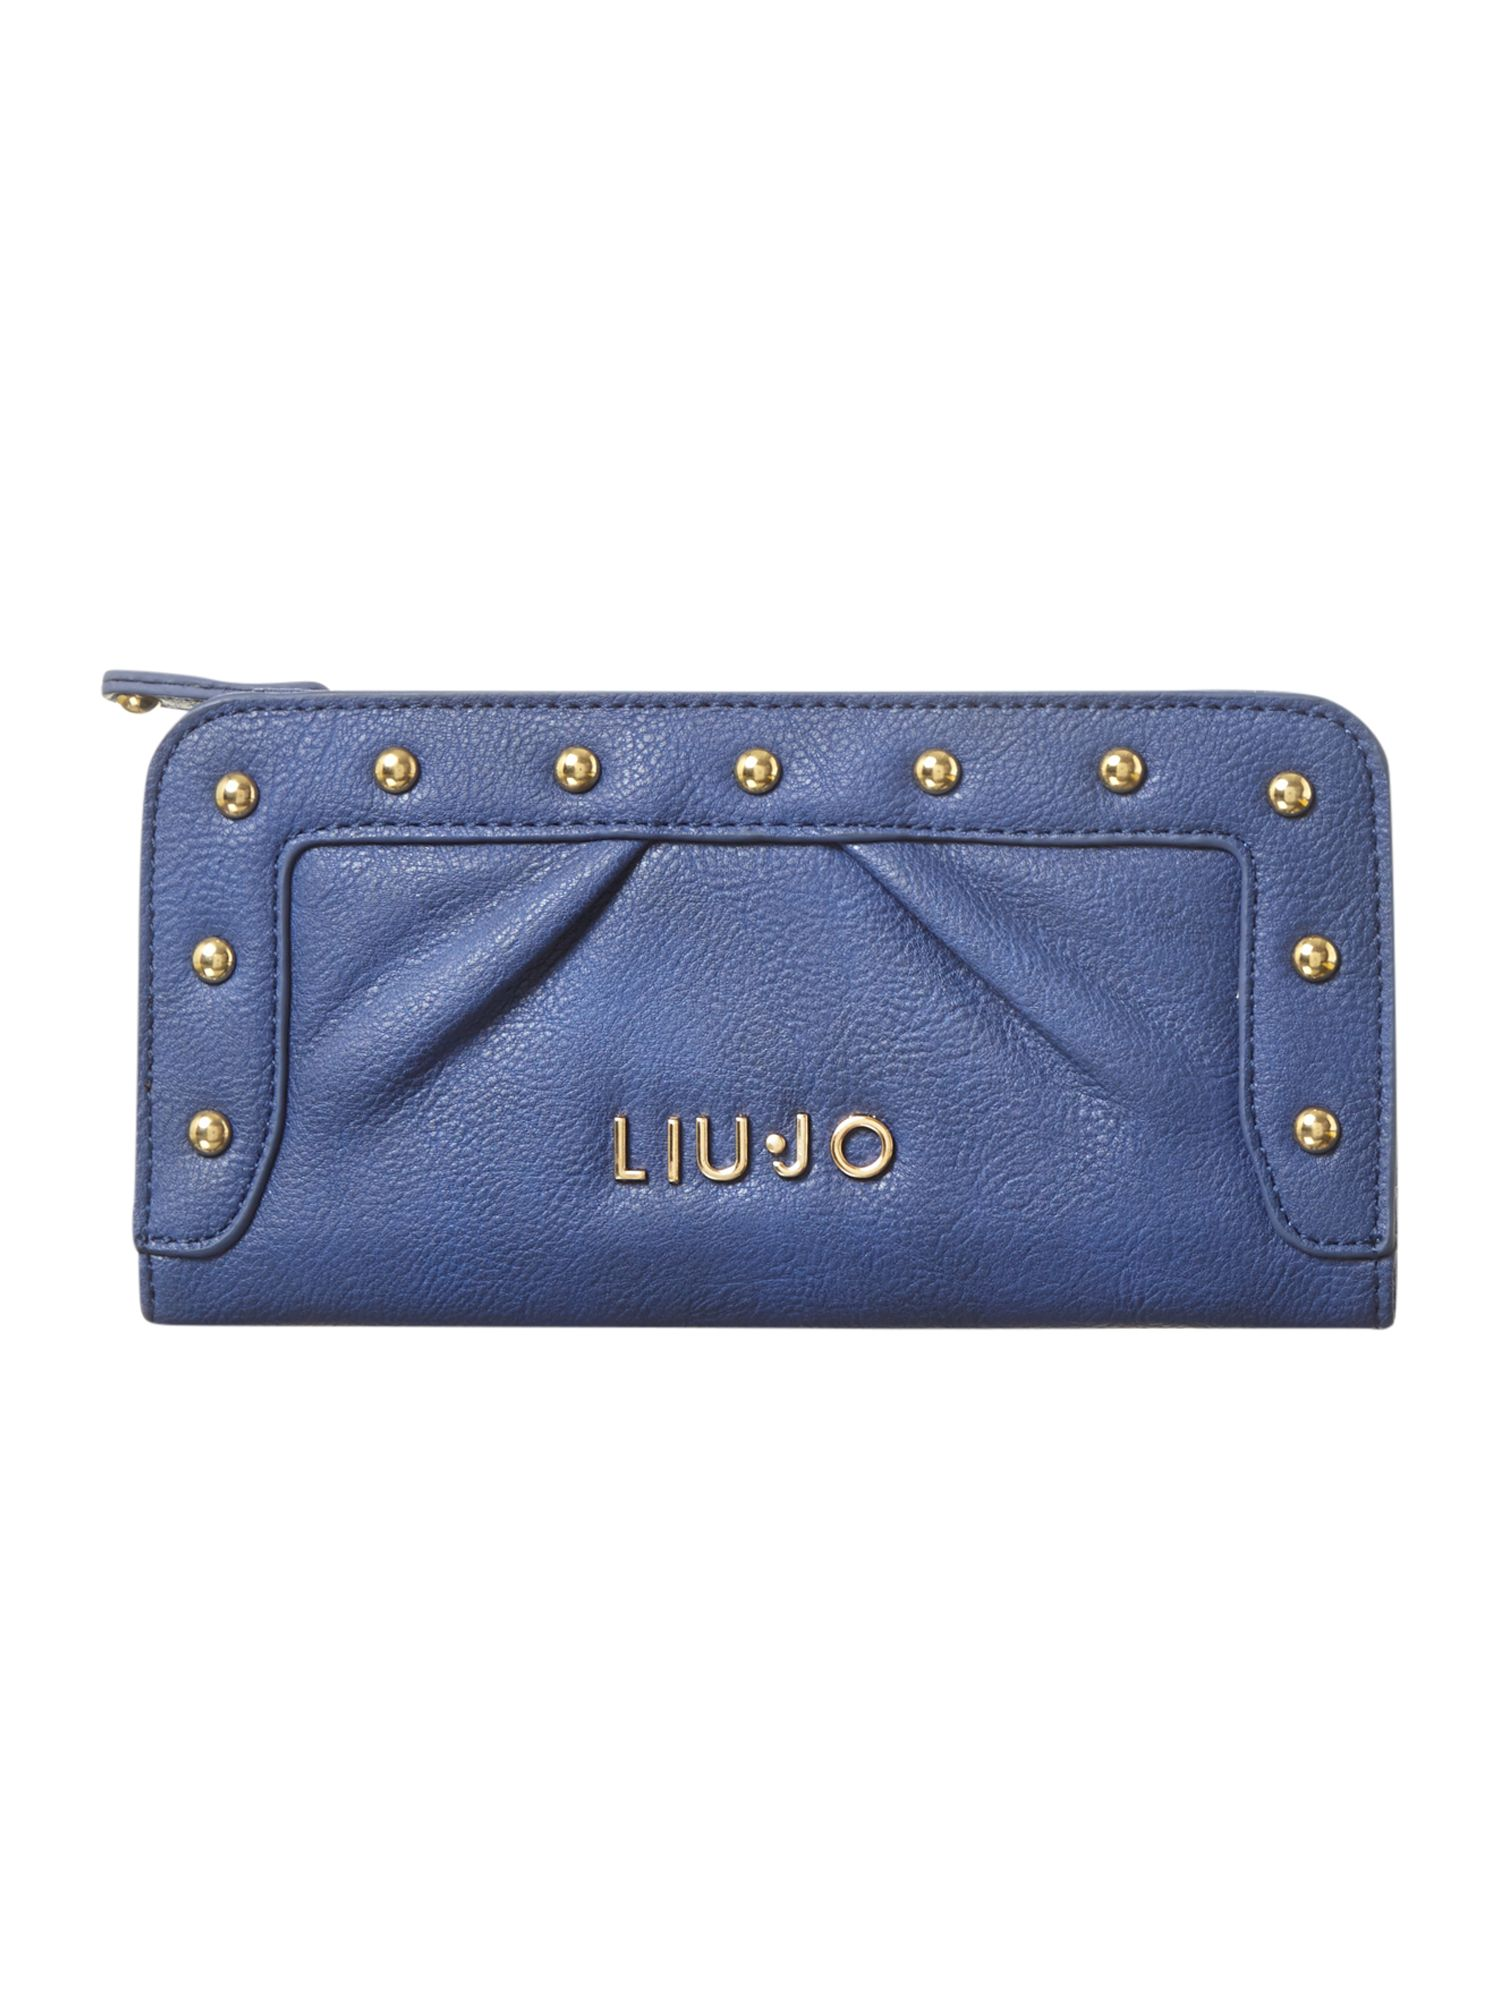 New good luck studded ziparound purse